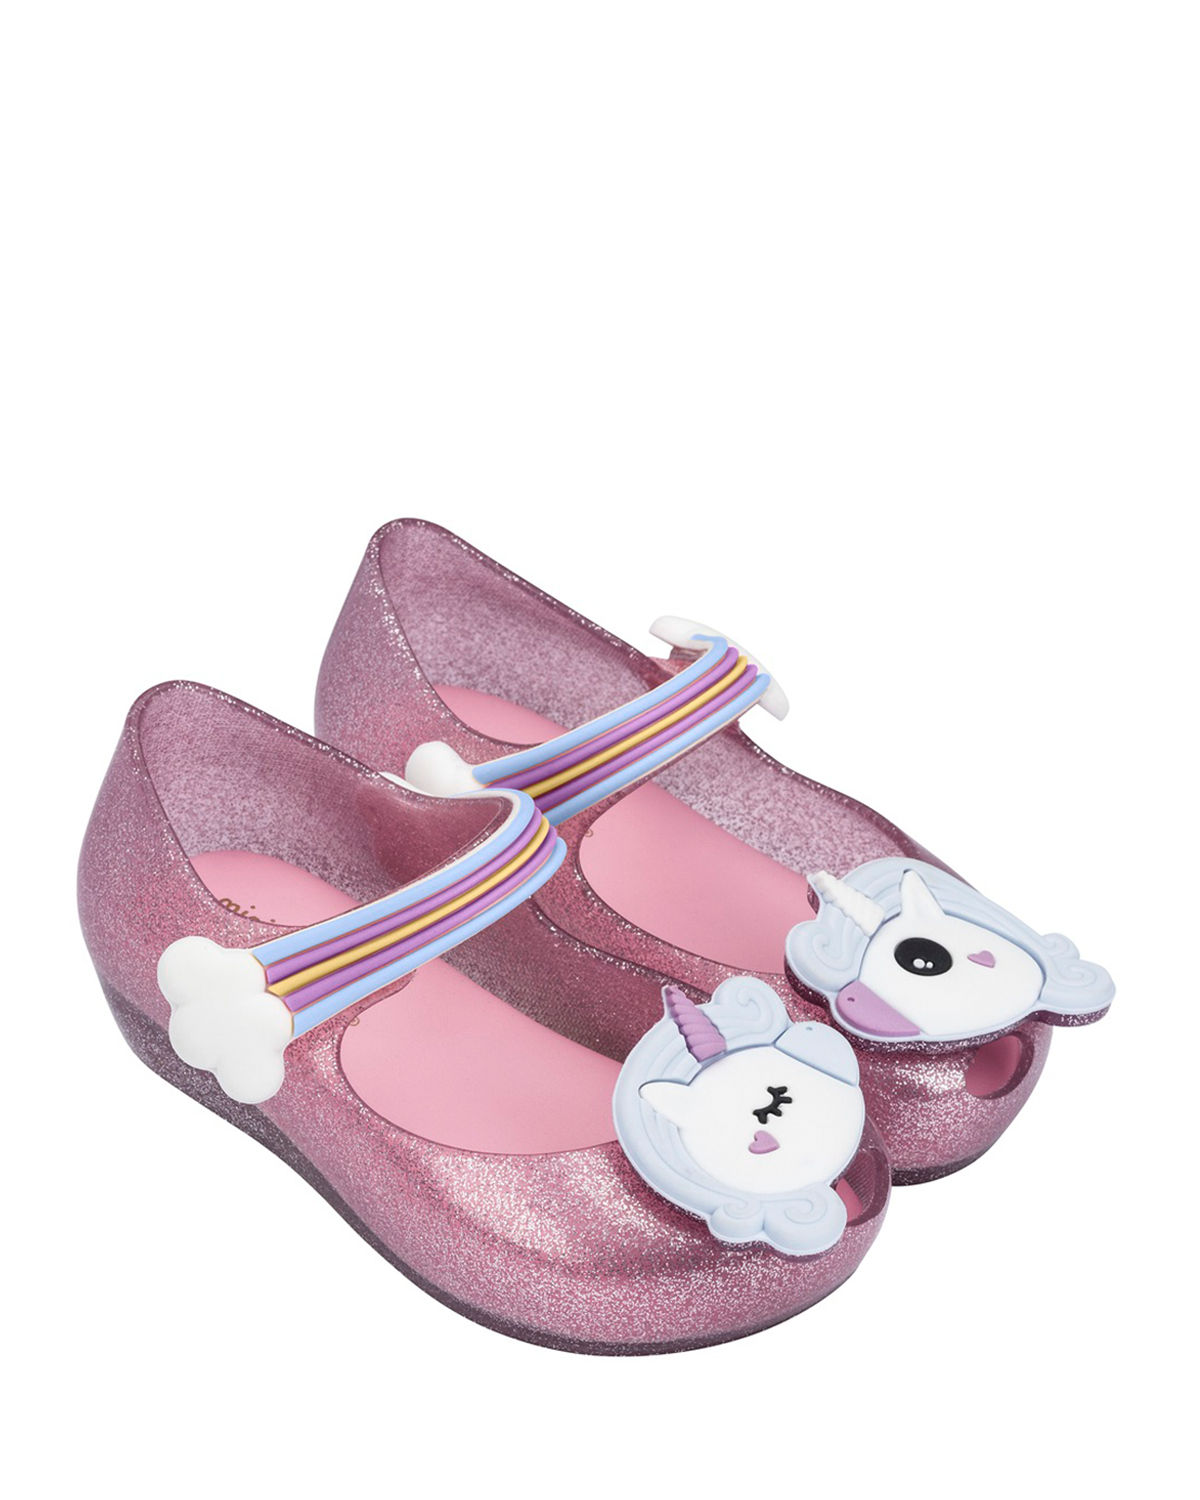 Mini Melissa Ultragirl Unicorn Mary Jane Flat 666c09098